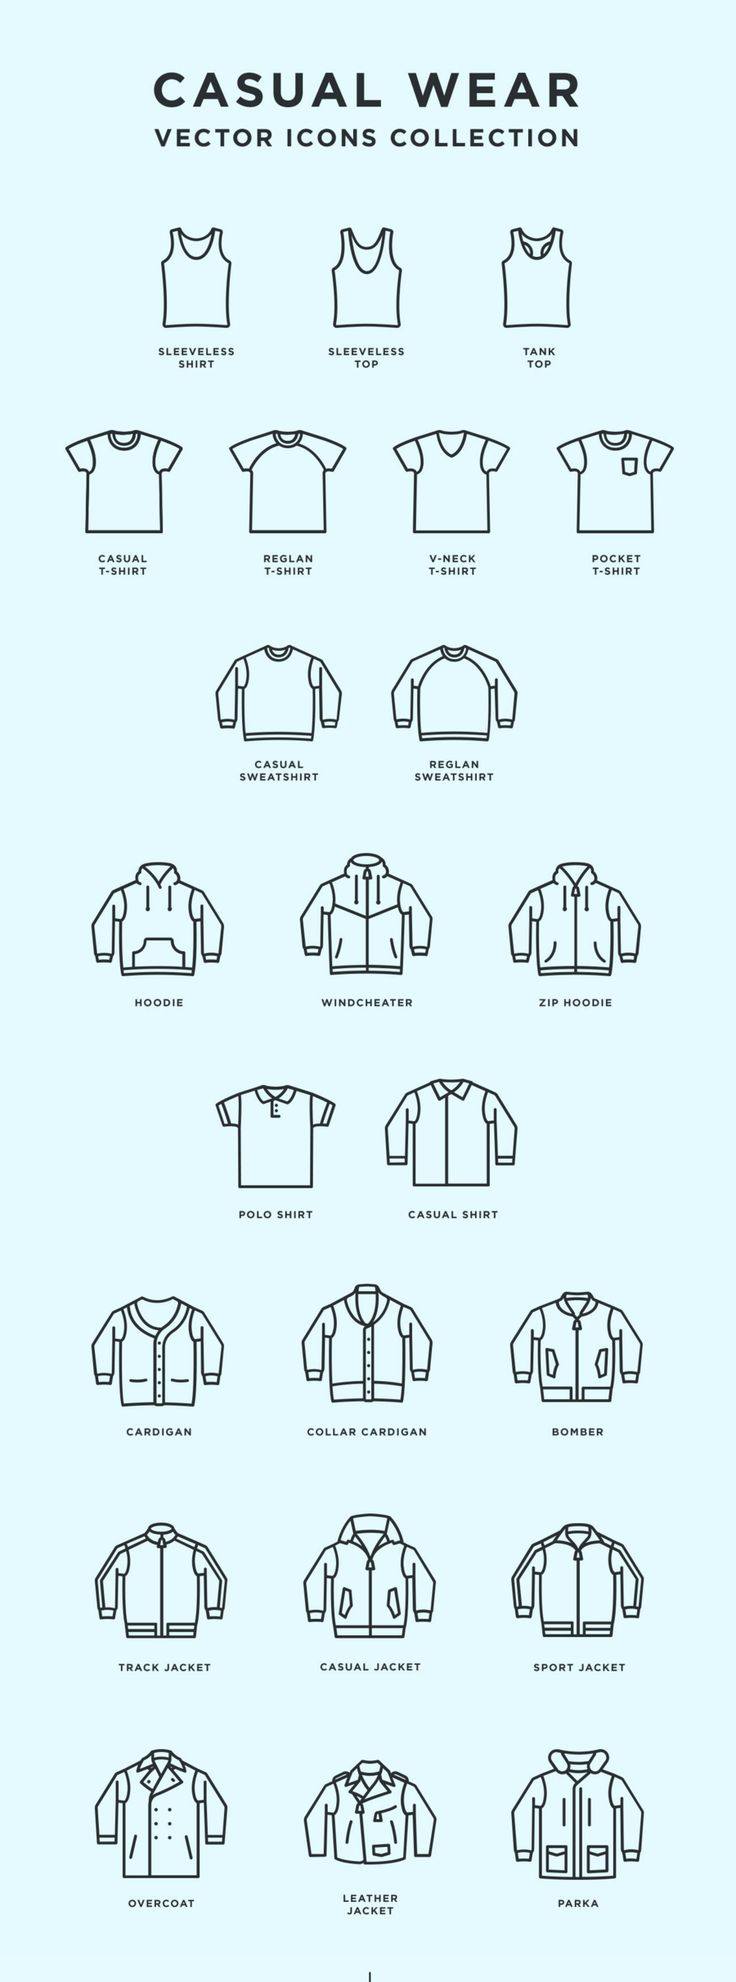 Casual Wear - Free Vector Icons